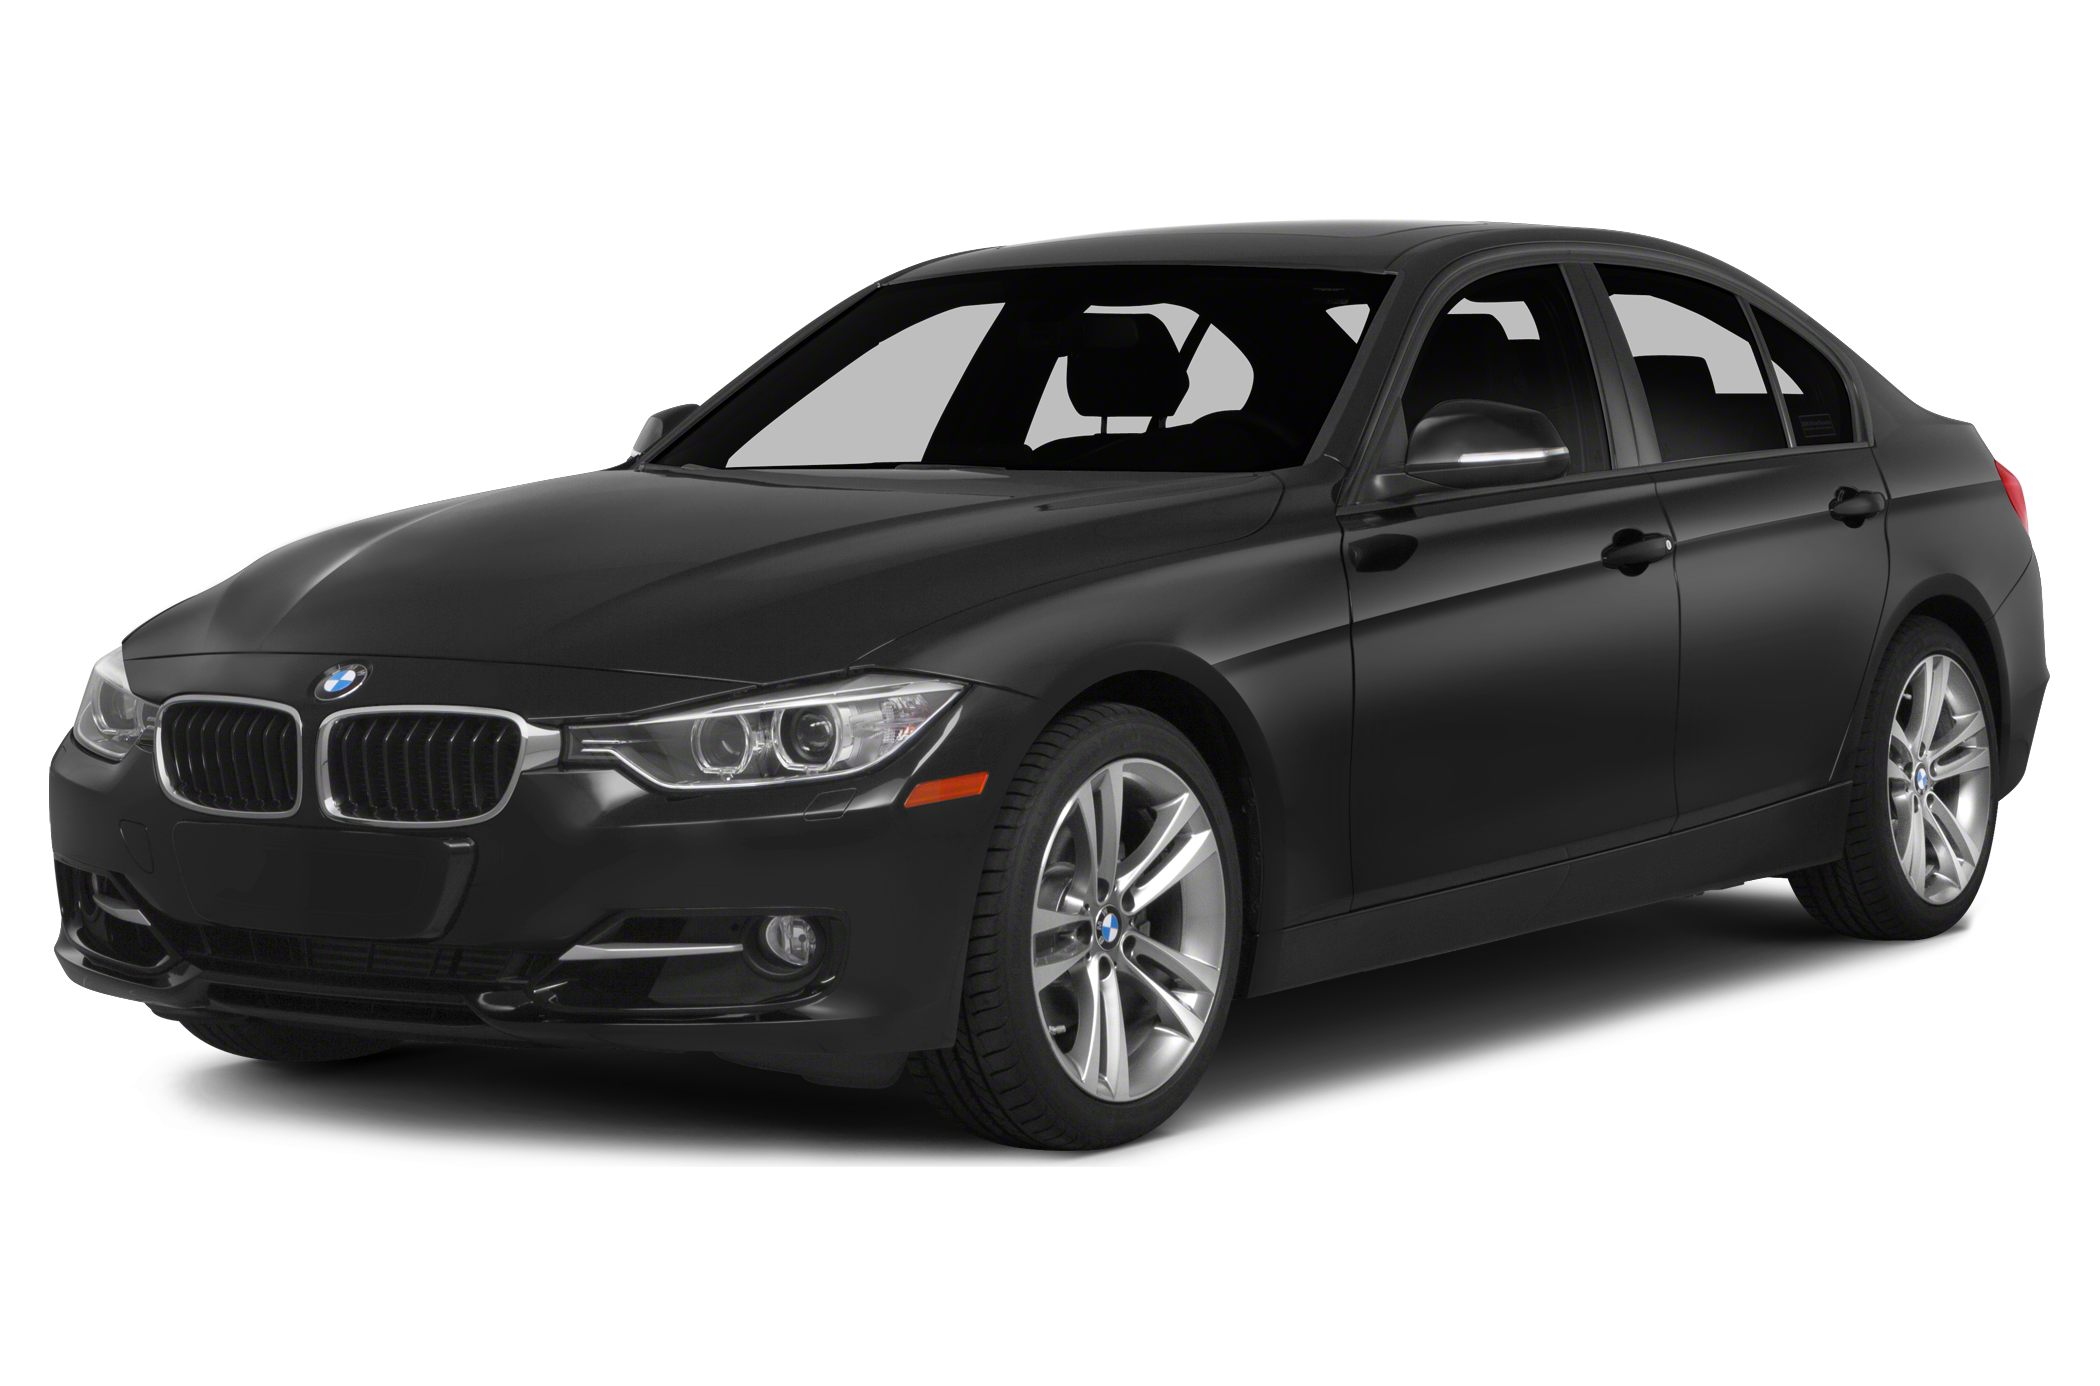 2015 BMW 320 I XDrive Sedan for sale in Mechanicsburg for $44,700 with 4 miles